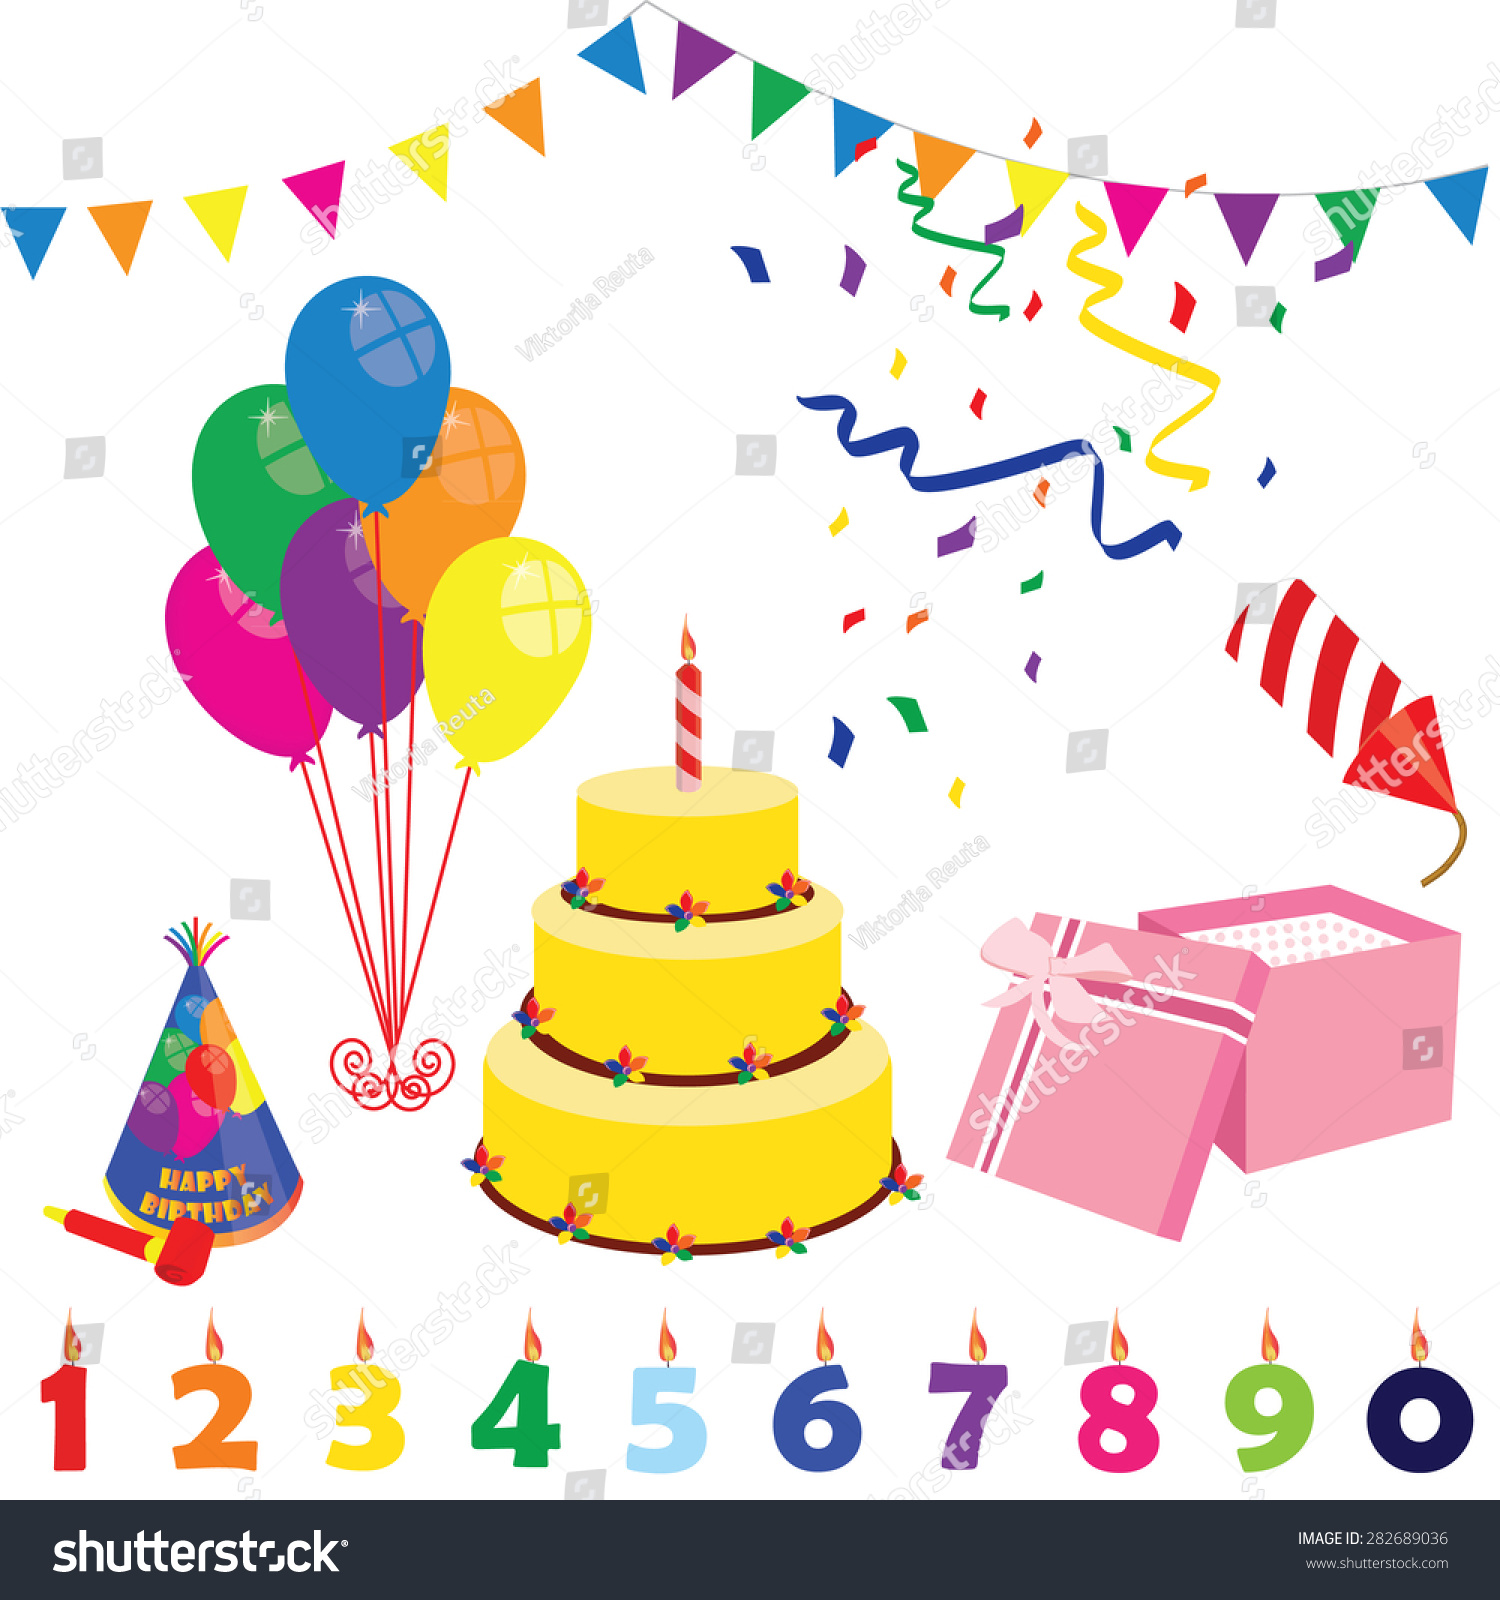 Birthday Party Elements Birthday Hat Cake Stock Vector Royalty Free